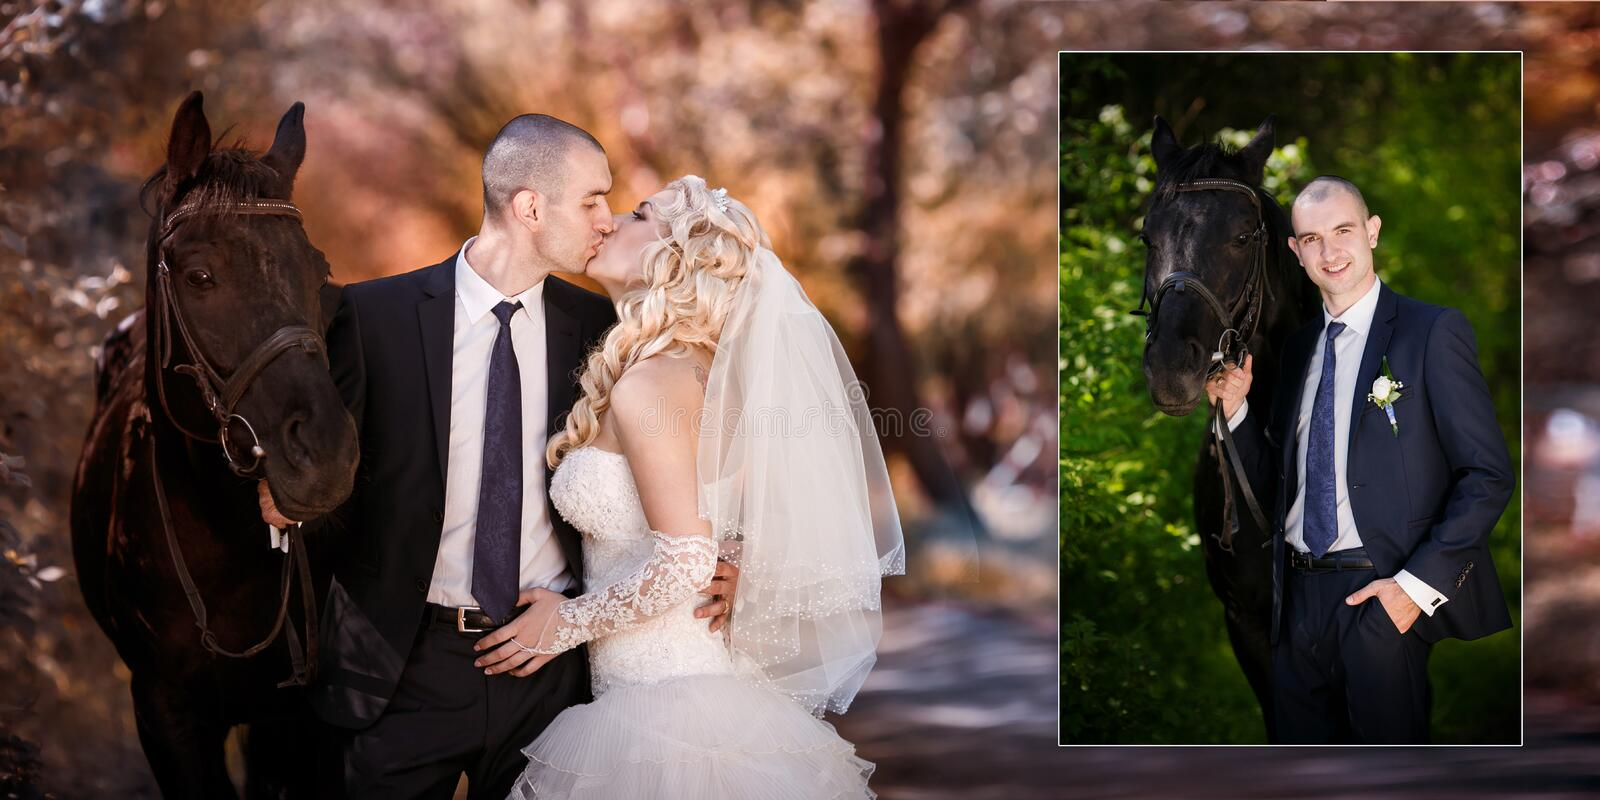 Groom and the bride during walk in their wedding day against a black horse stock images